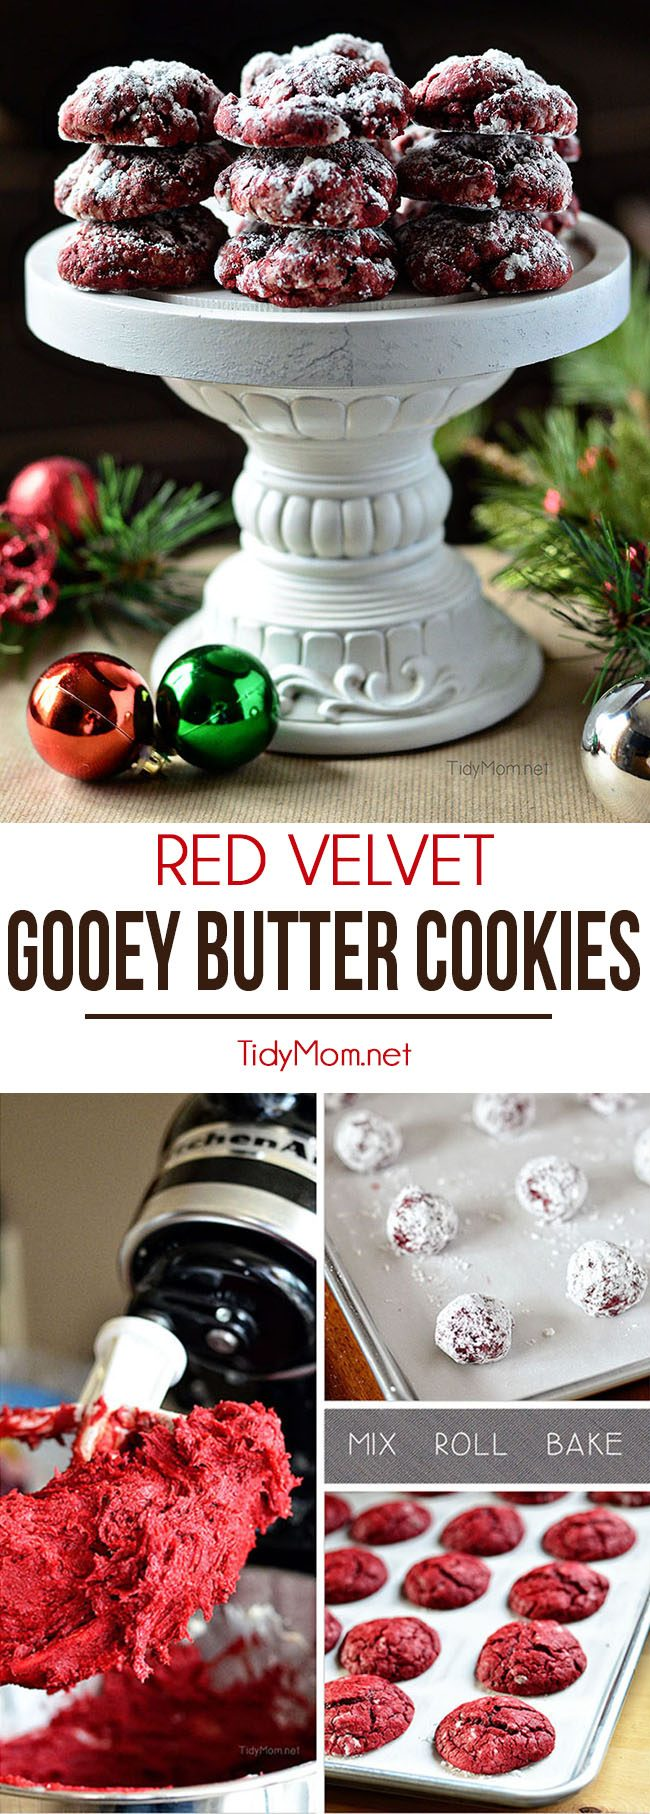 This holiday cookie hit starts with a boxed cake mix, making them so simple you'll have no excuse not to make them! Add Red Velvet Gooey Butter Cookies to your holiday cookie tray and gift list this year! recipe at TidyMom.net